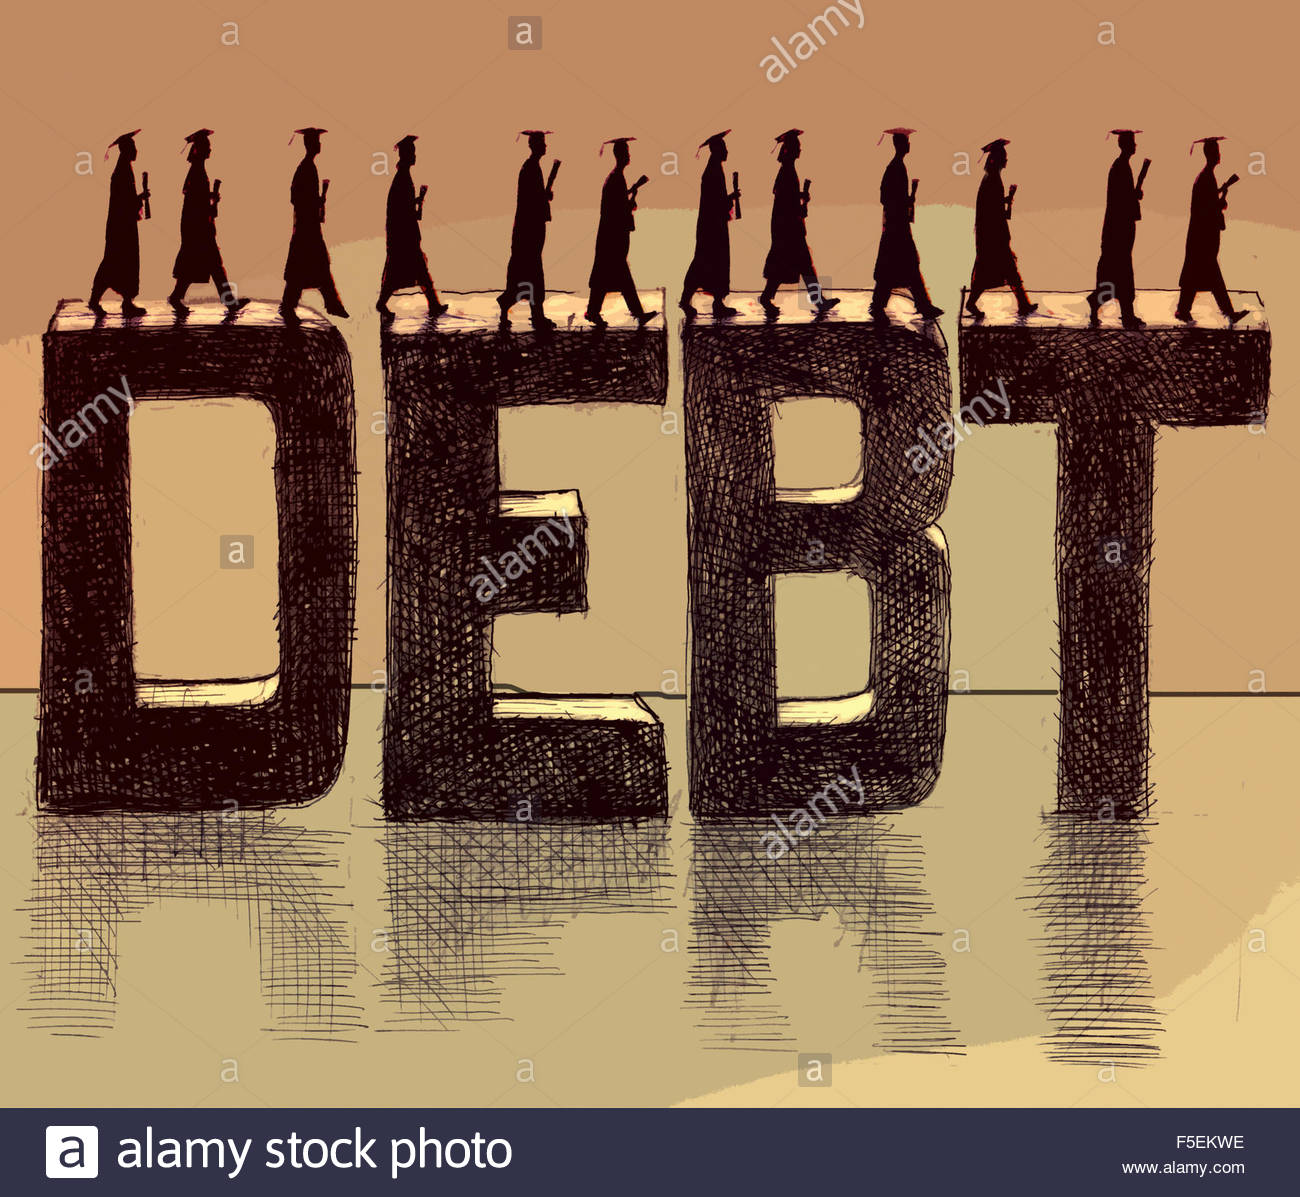 Graduate students walking across the word 'debt' Stock Photo